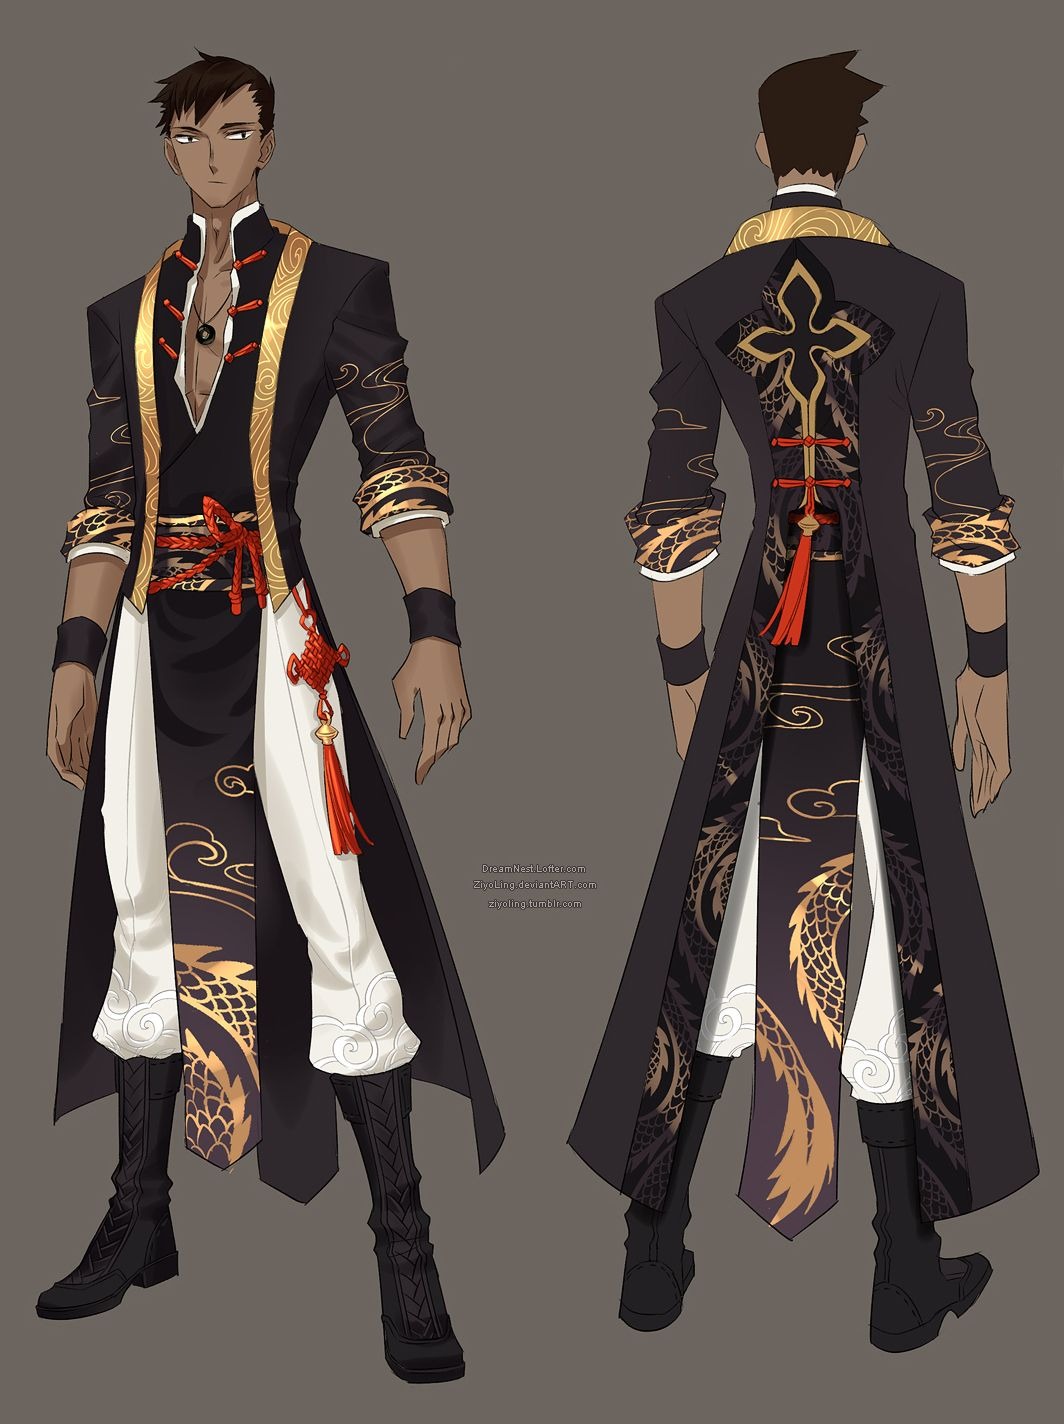 The illustrators who draw male costumes very often create